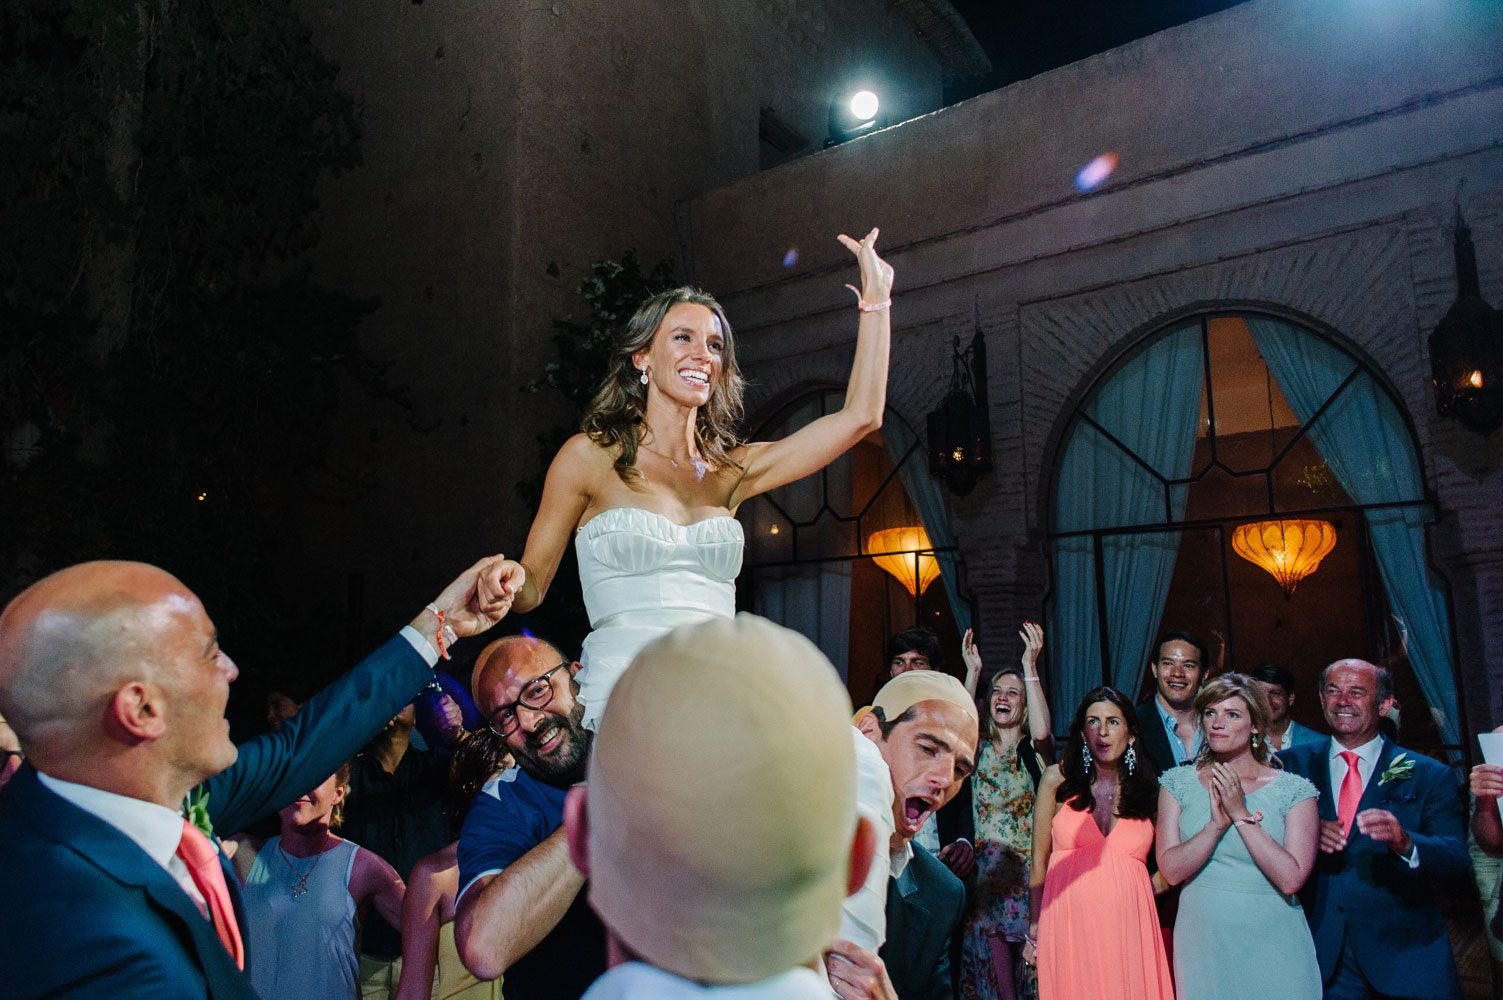 bride raised aloft at beldi club wedding